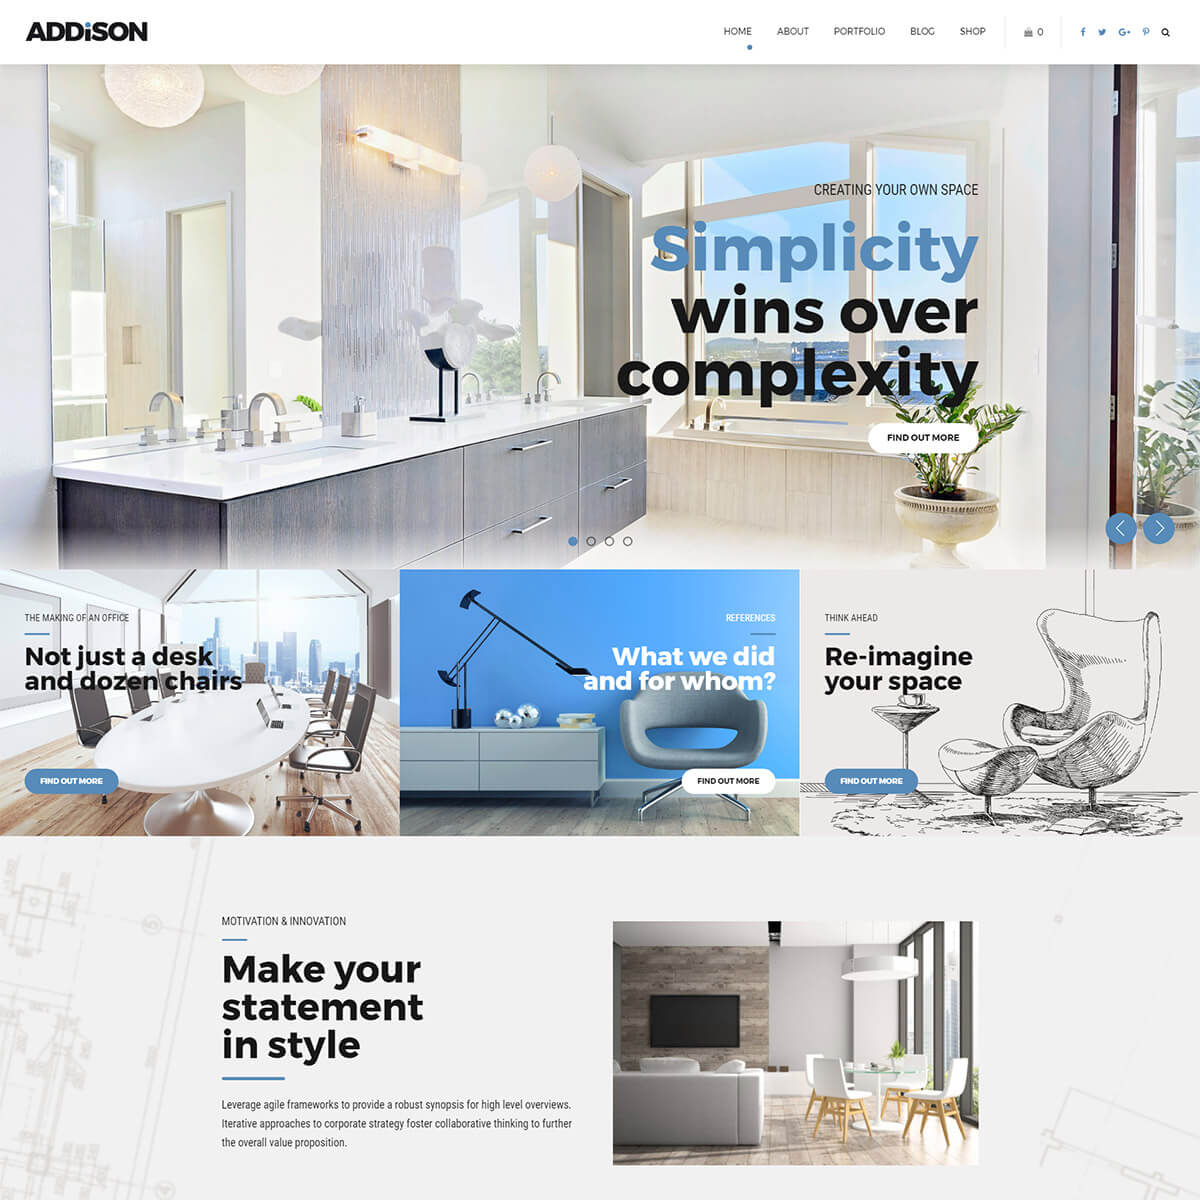 http://addison.bold-themes.com/wp-content/uploads/2017/06/demo-main.jpg